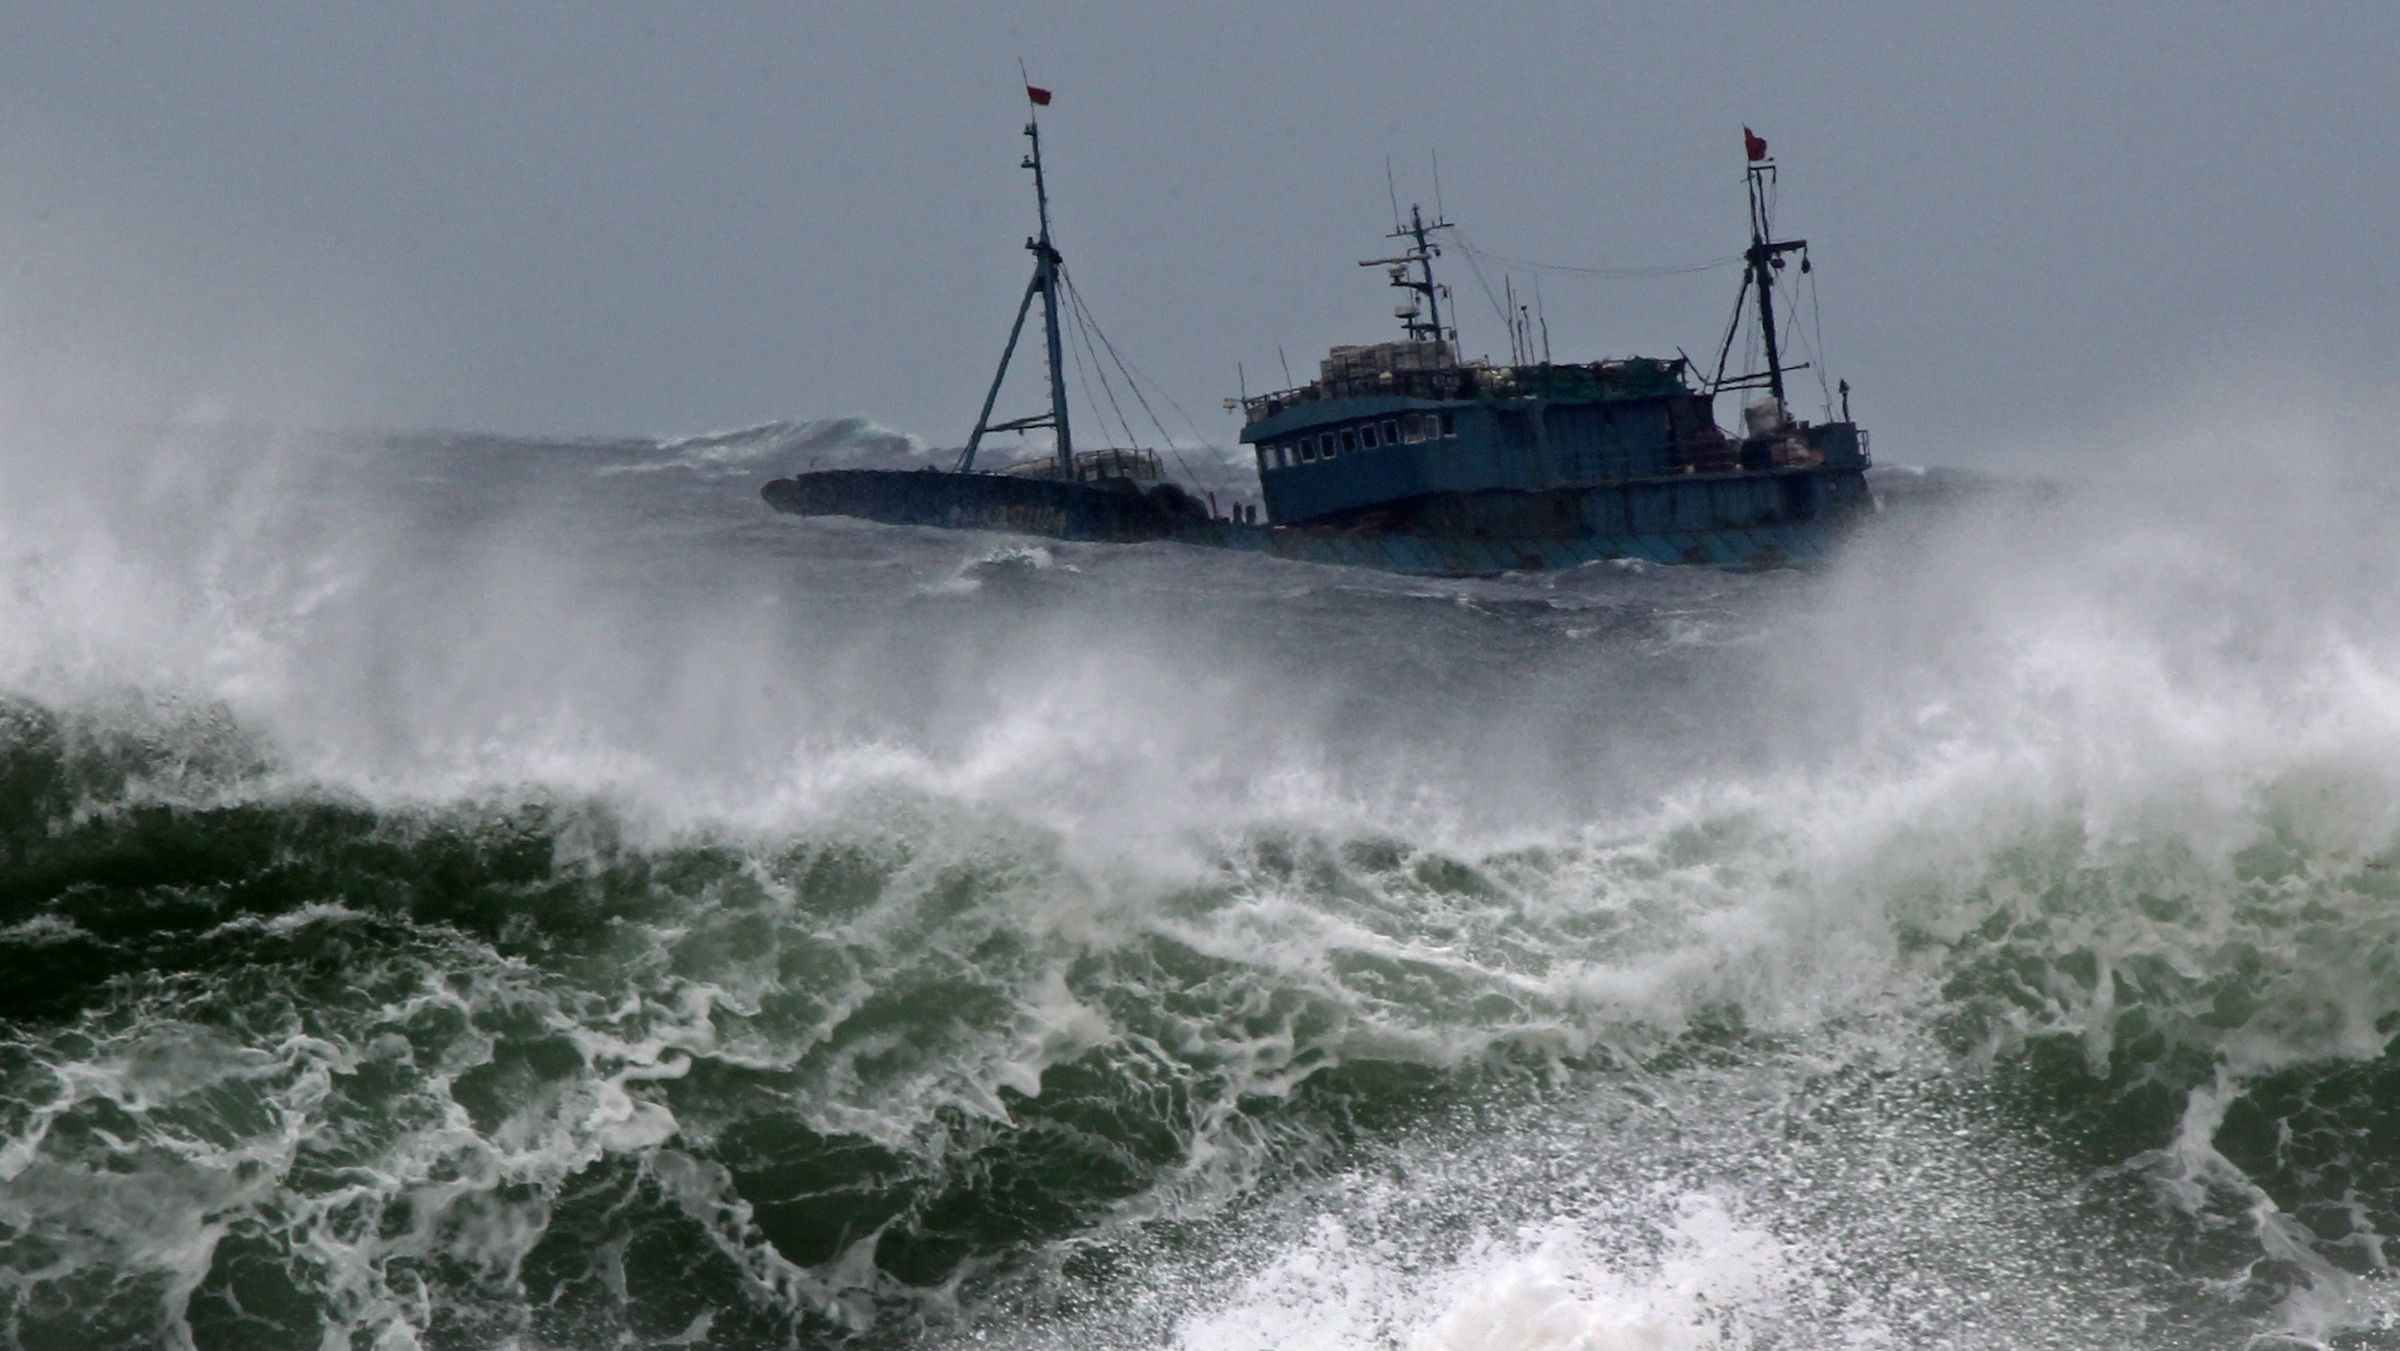 Chinese fishing boat navigates through rough waves caused by Typhoon Bolaven in waters off Seogwipo on Jeju Island, South Korea